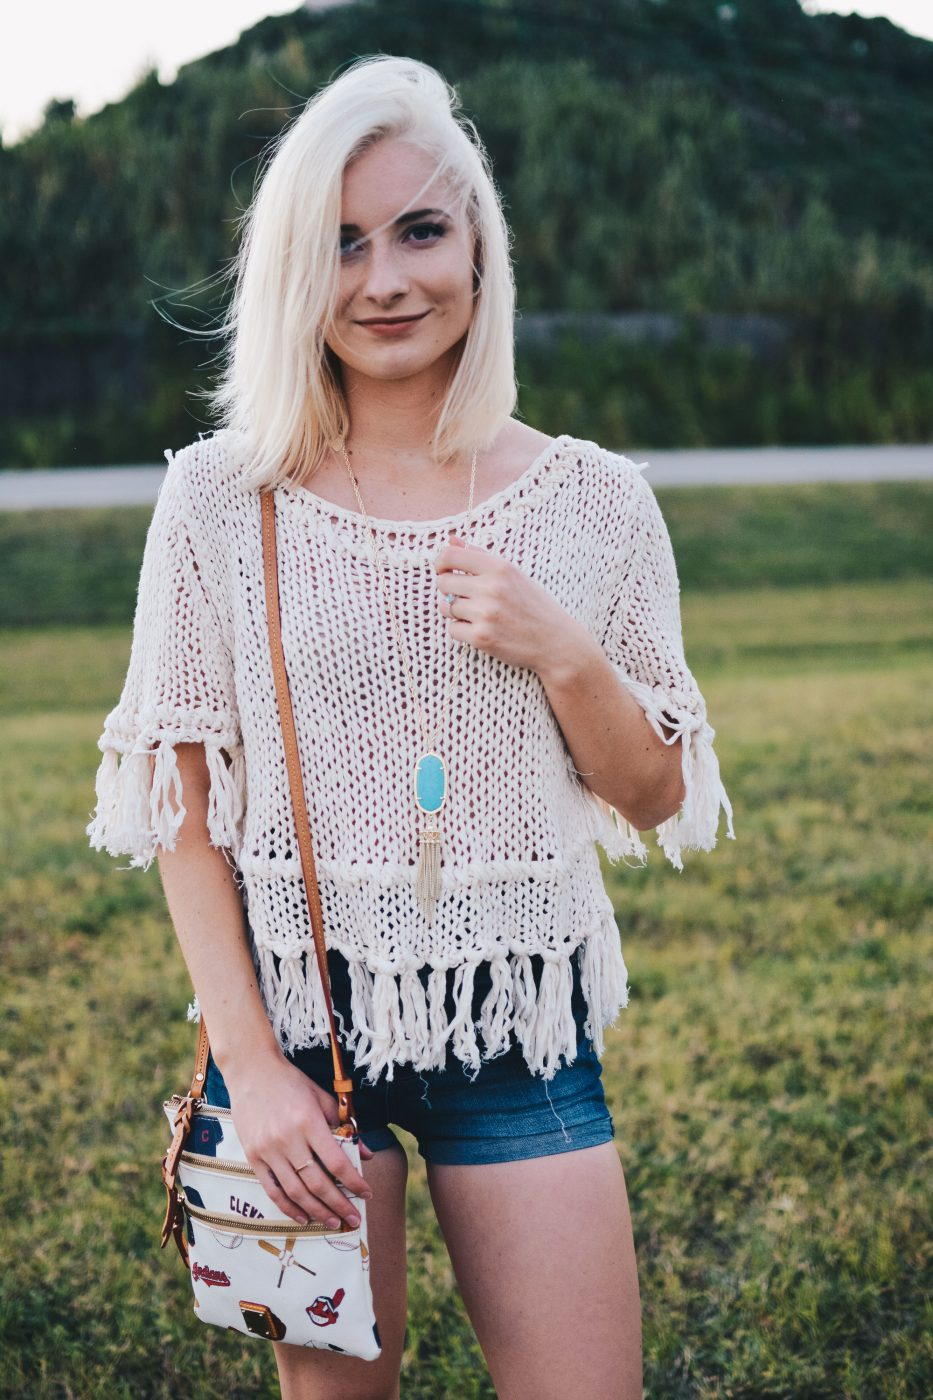 Fall Classic: Outfit. Free People top, high-waisted jean shorts, Dooney & Bourke Indians bag